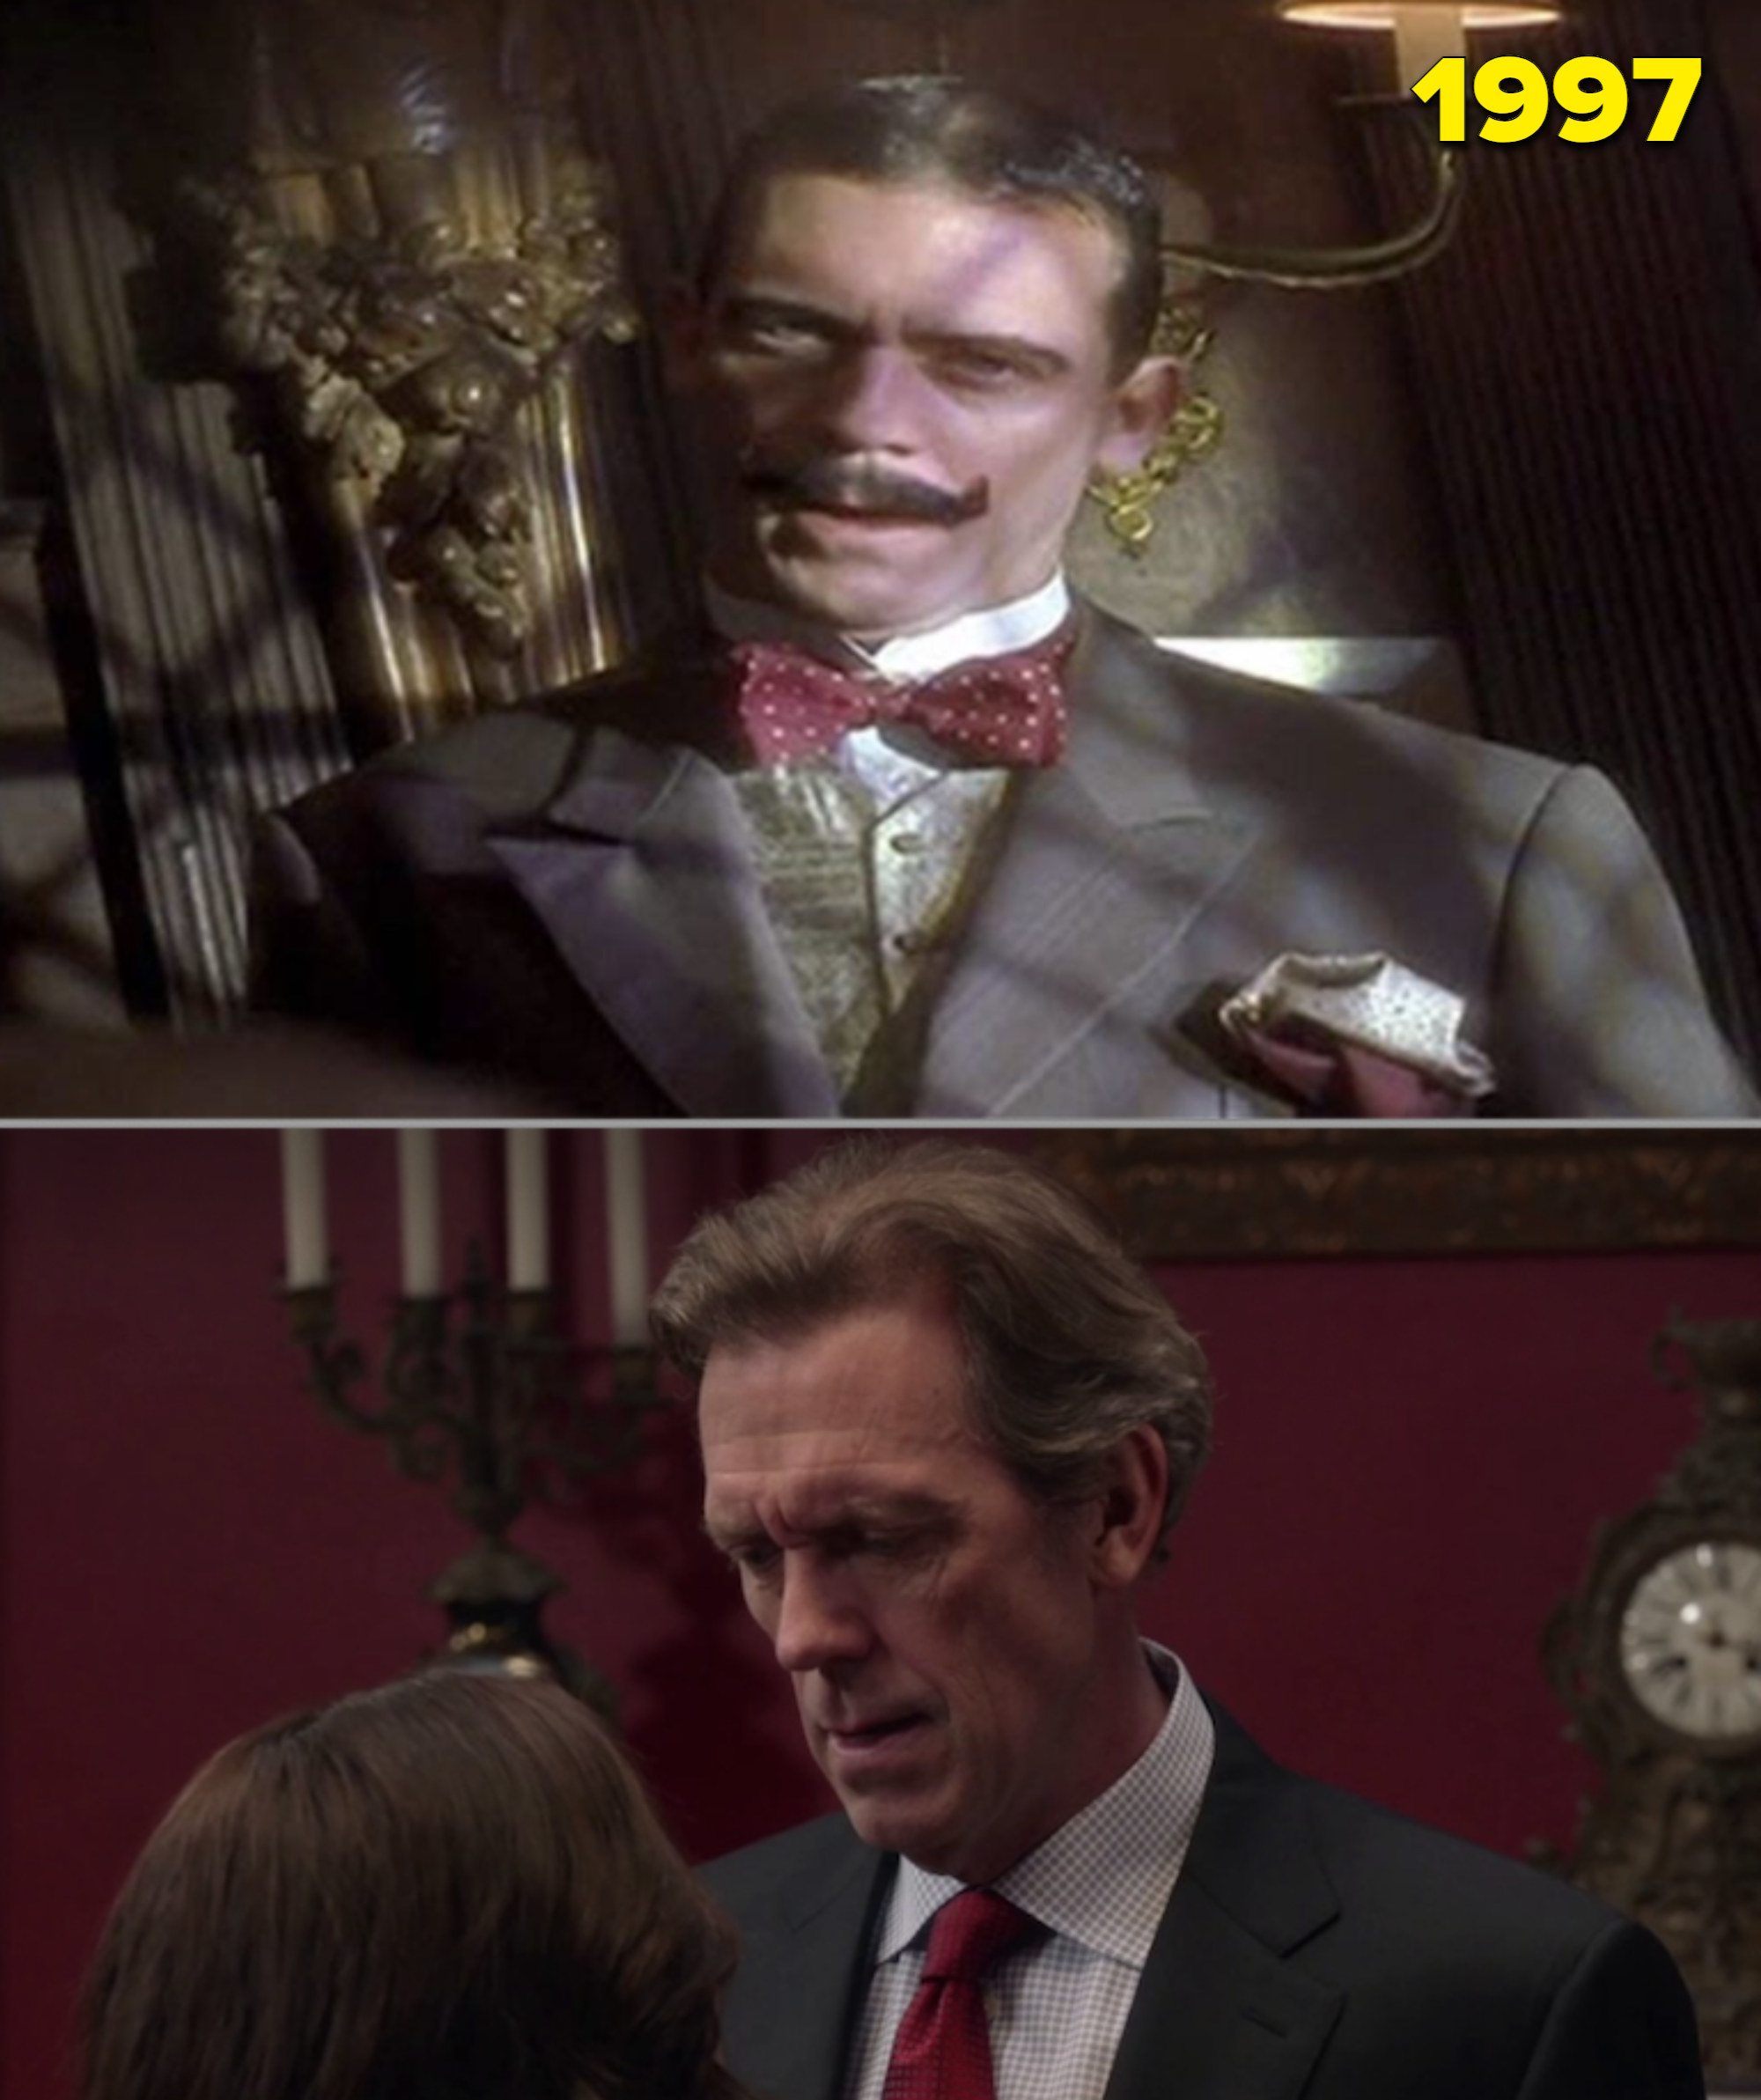 """Hugh Laurie with a mustache in """"Spice World"""" vs. him as the Vice President in """"Veep"""""""